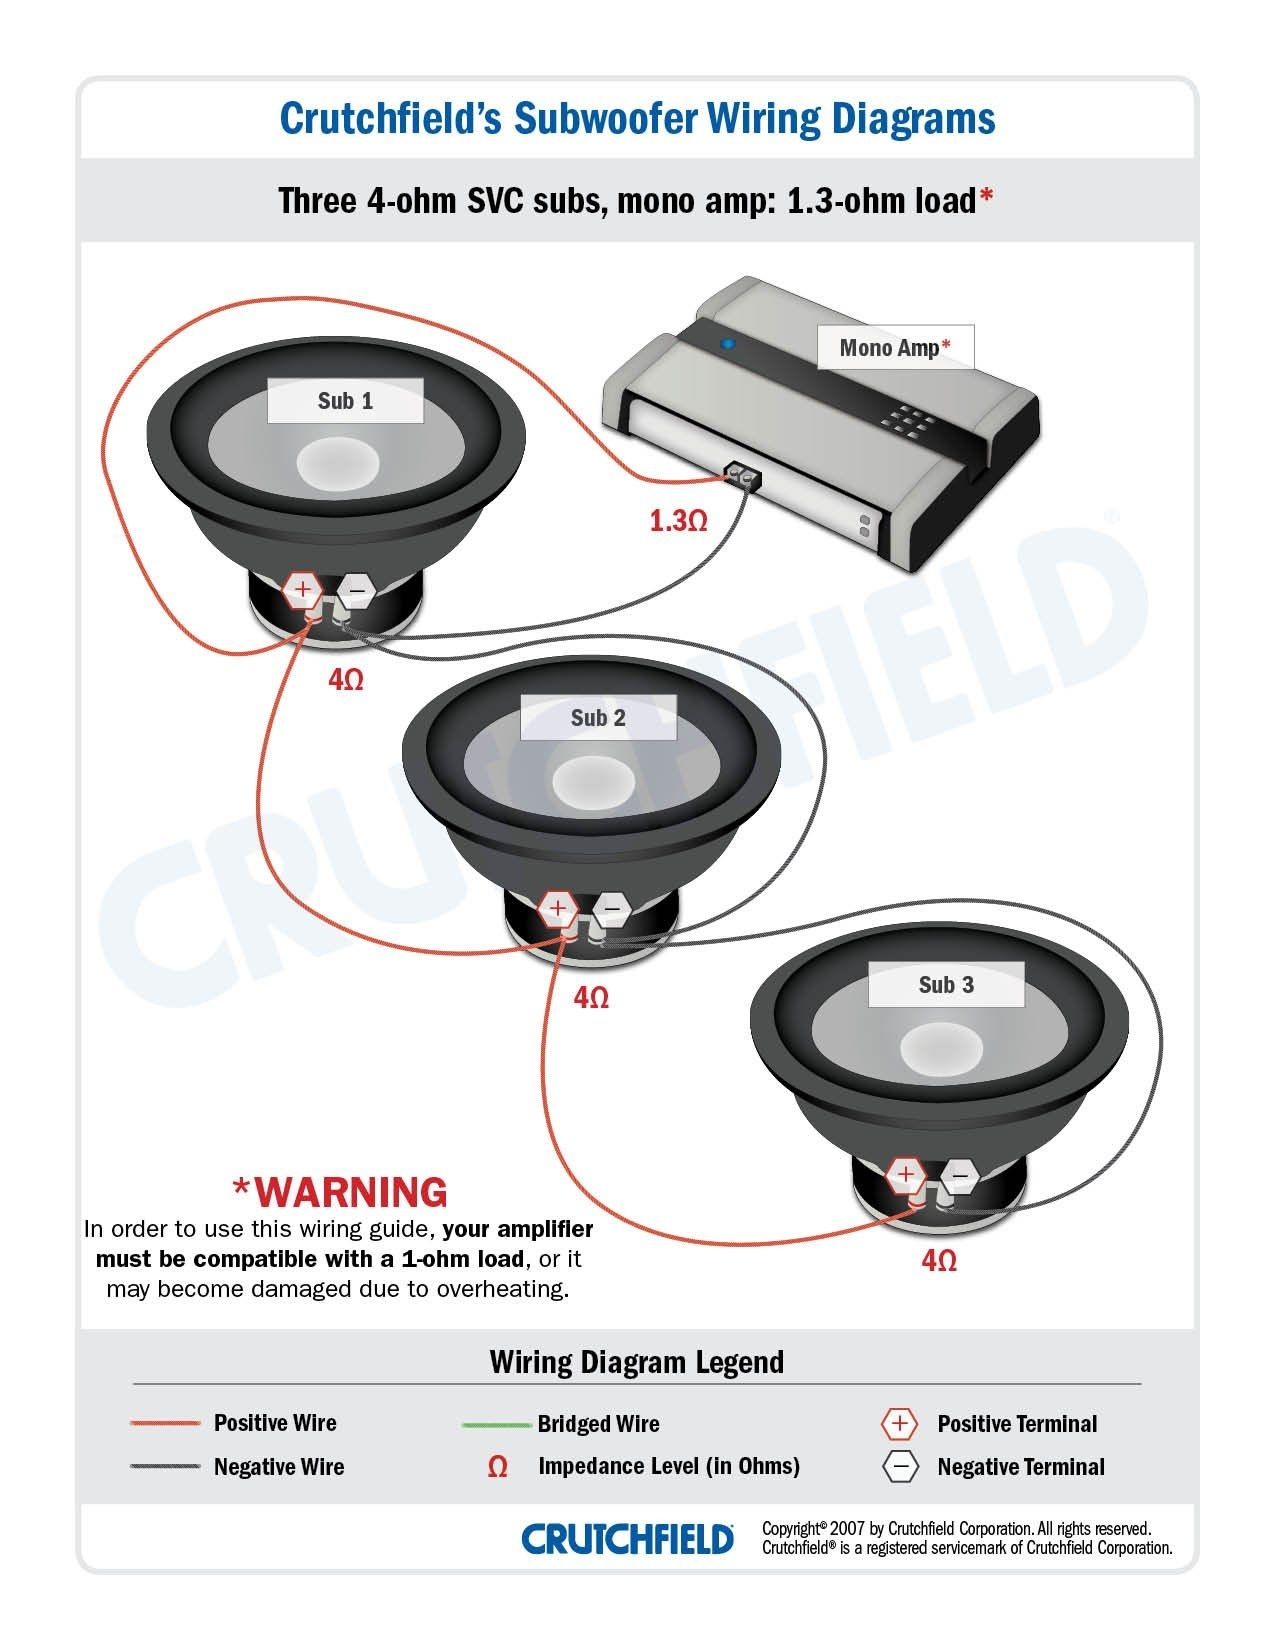 subwoofer wiring diagrams \u2014 how to wire your subs regarding Sub 2 Ohms Wiring